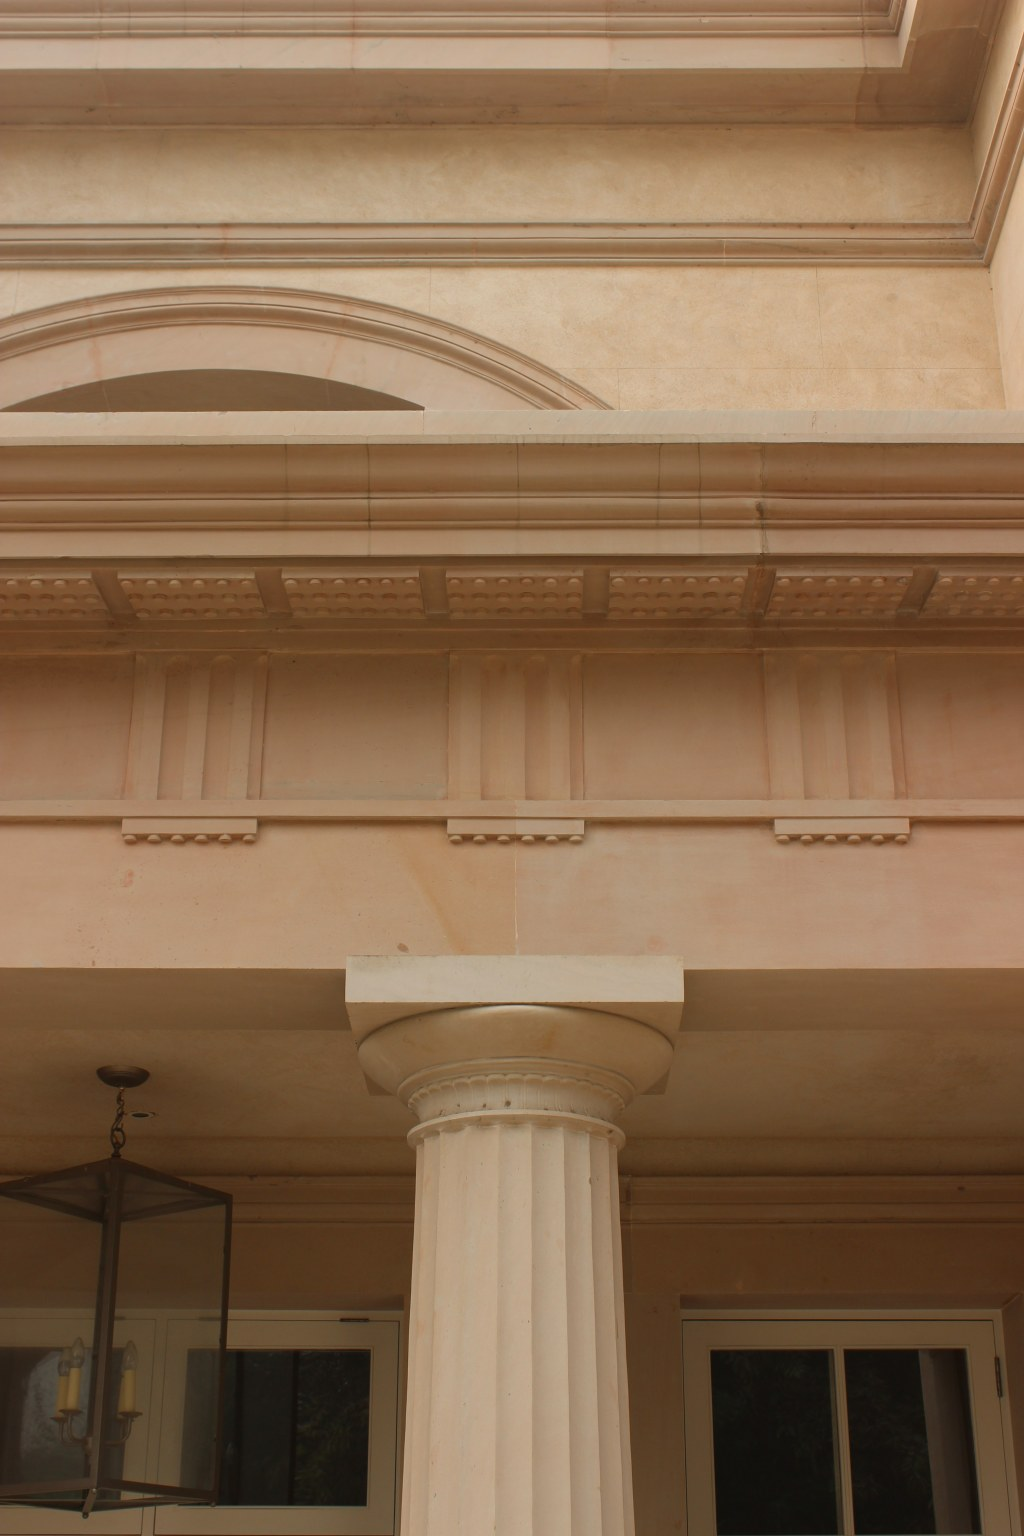 Modern Classical villa in New Delhi / Column detail